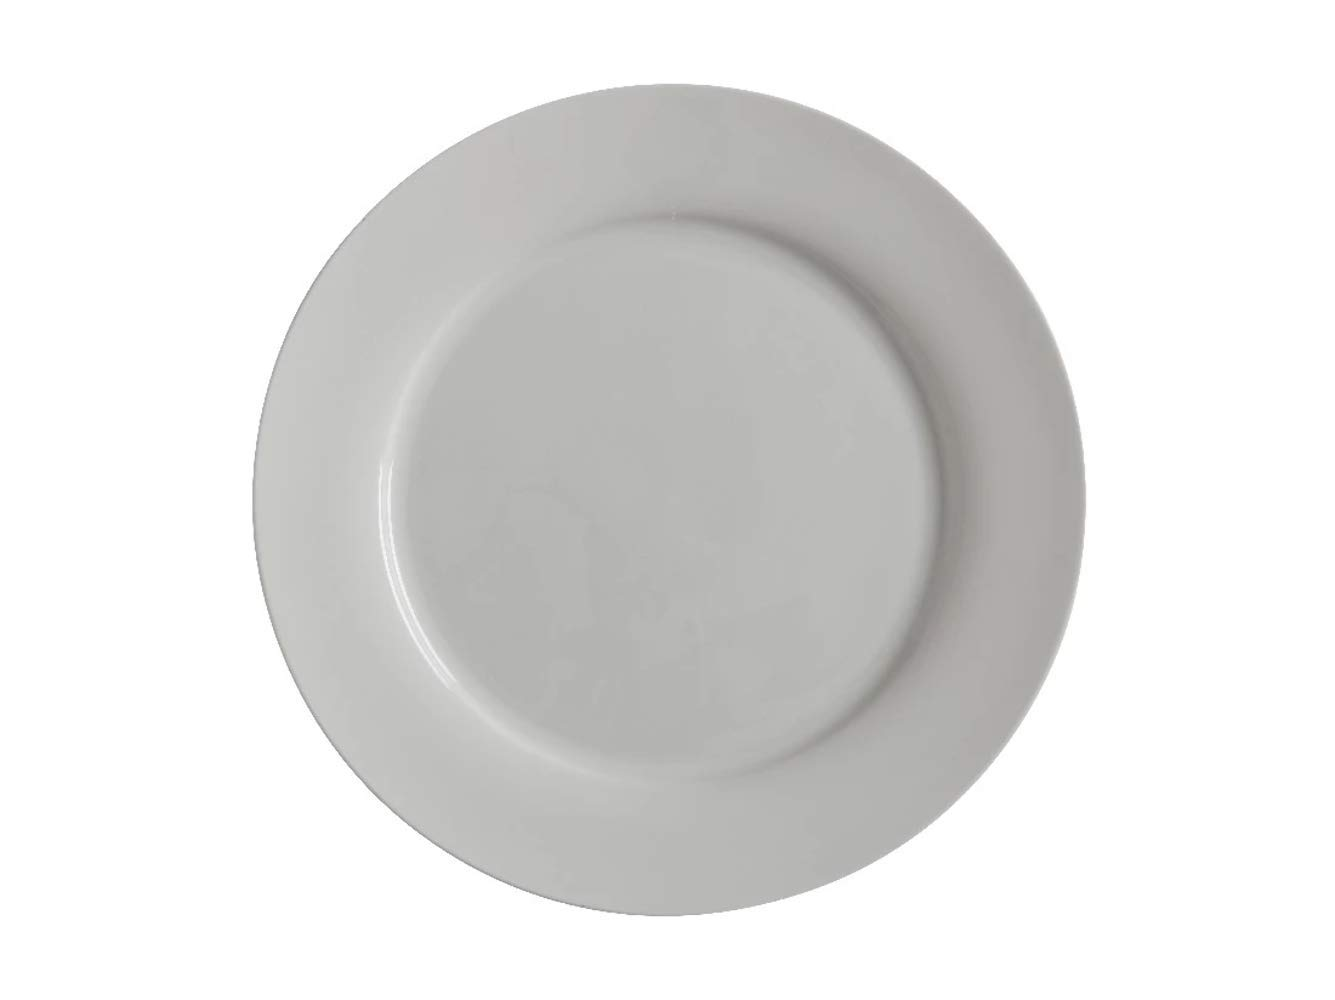 Maxwell & Williams BC1881 Cashmere Dinner Plate, Wide Rimmed Style, Fine Bone China